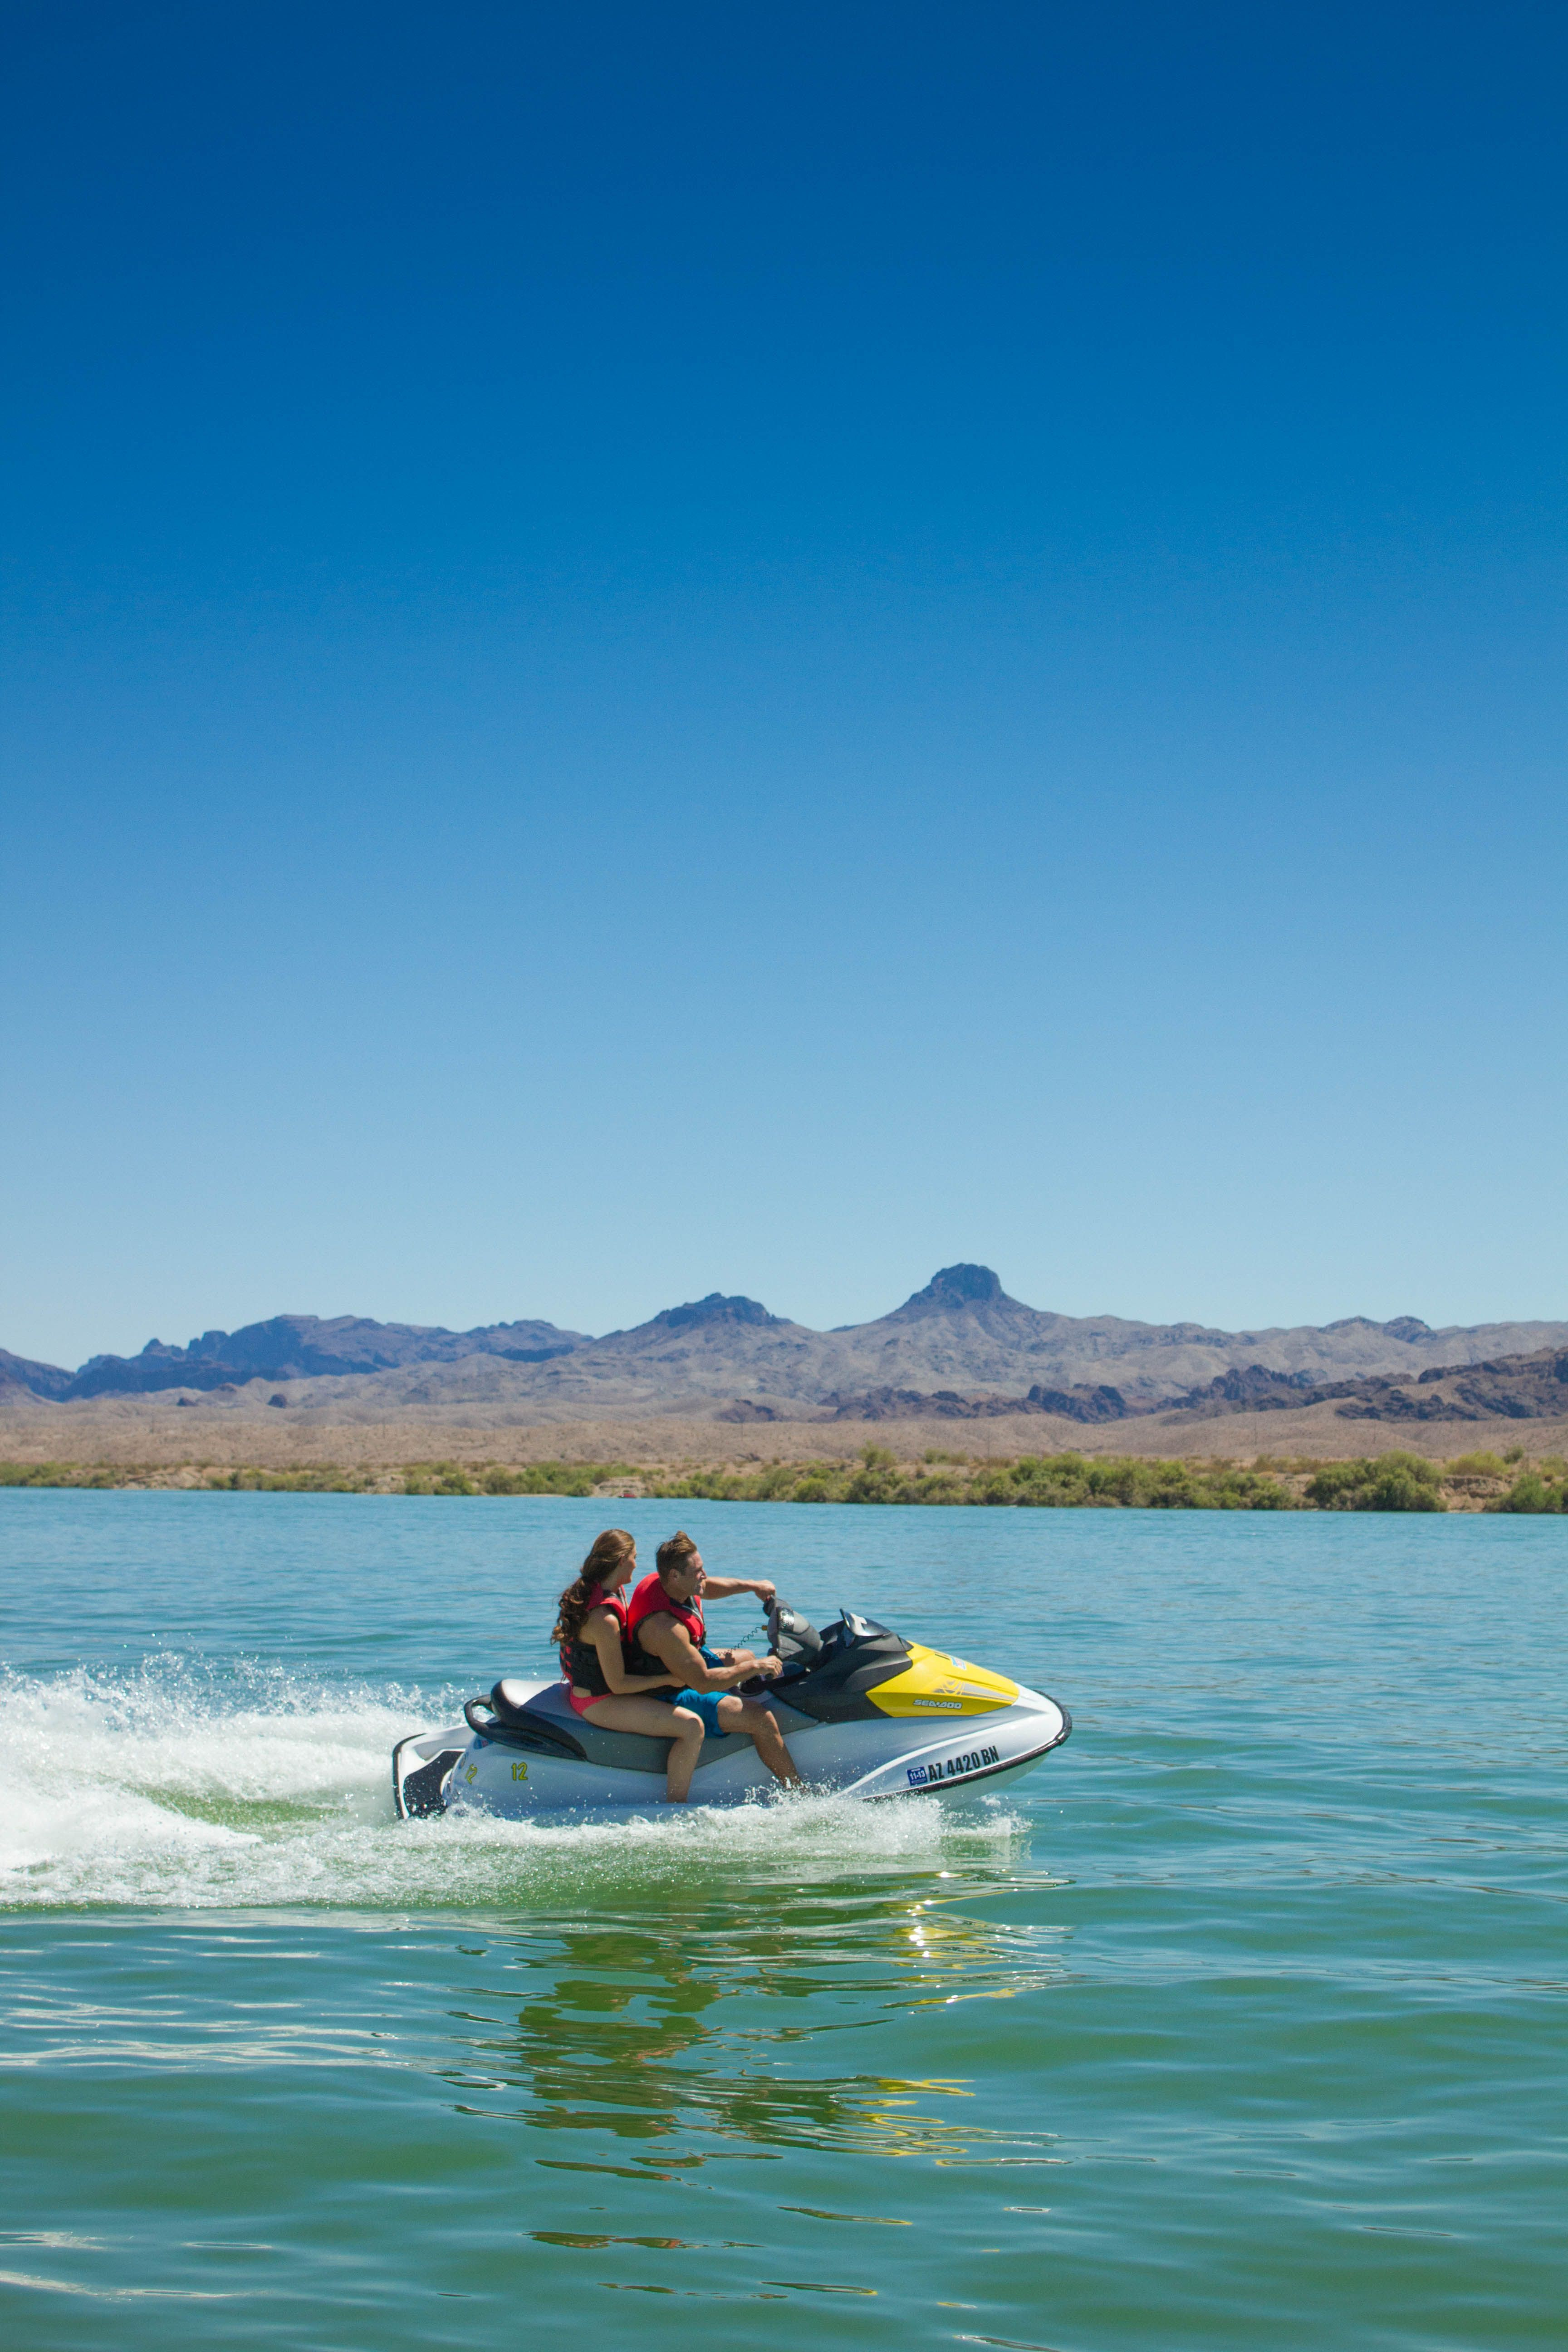 With 60 Continuous Miles Of Waterways Lake Havasu Is Known As The Jet Ski Capital Of The World With Images Lake Havasu Lake Winter Family Vacations